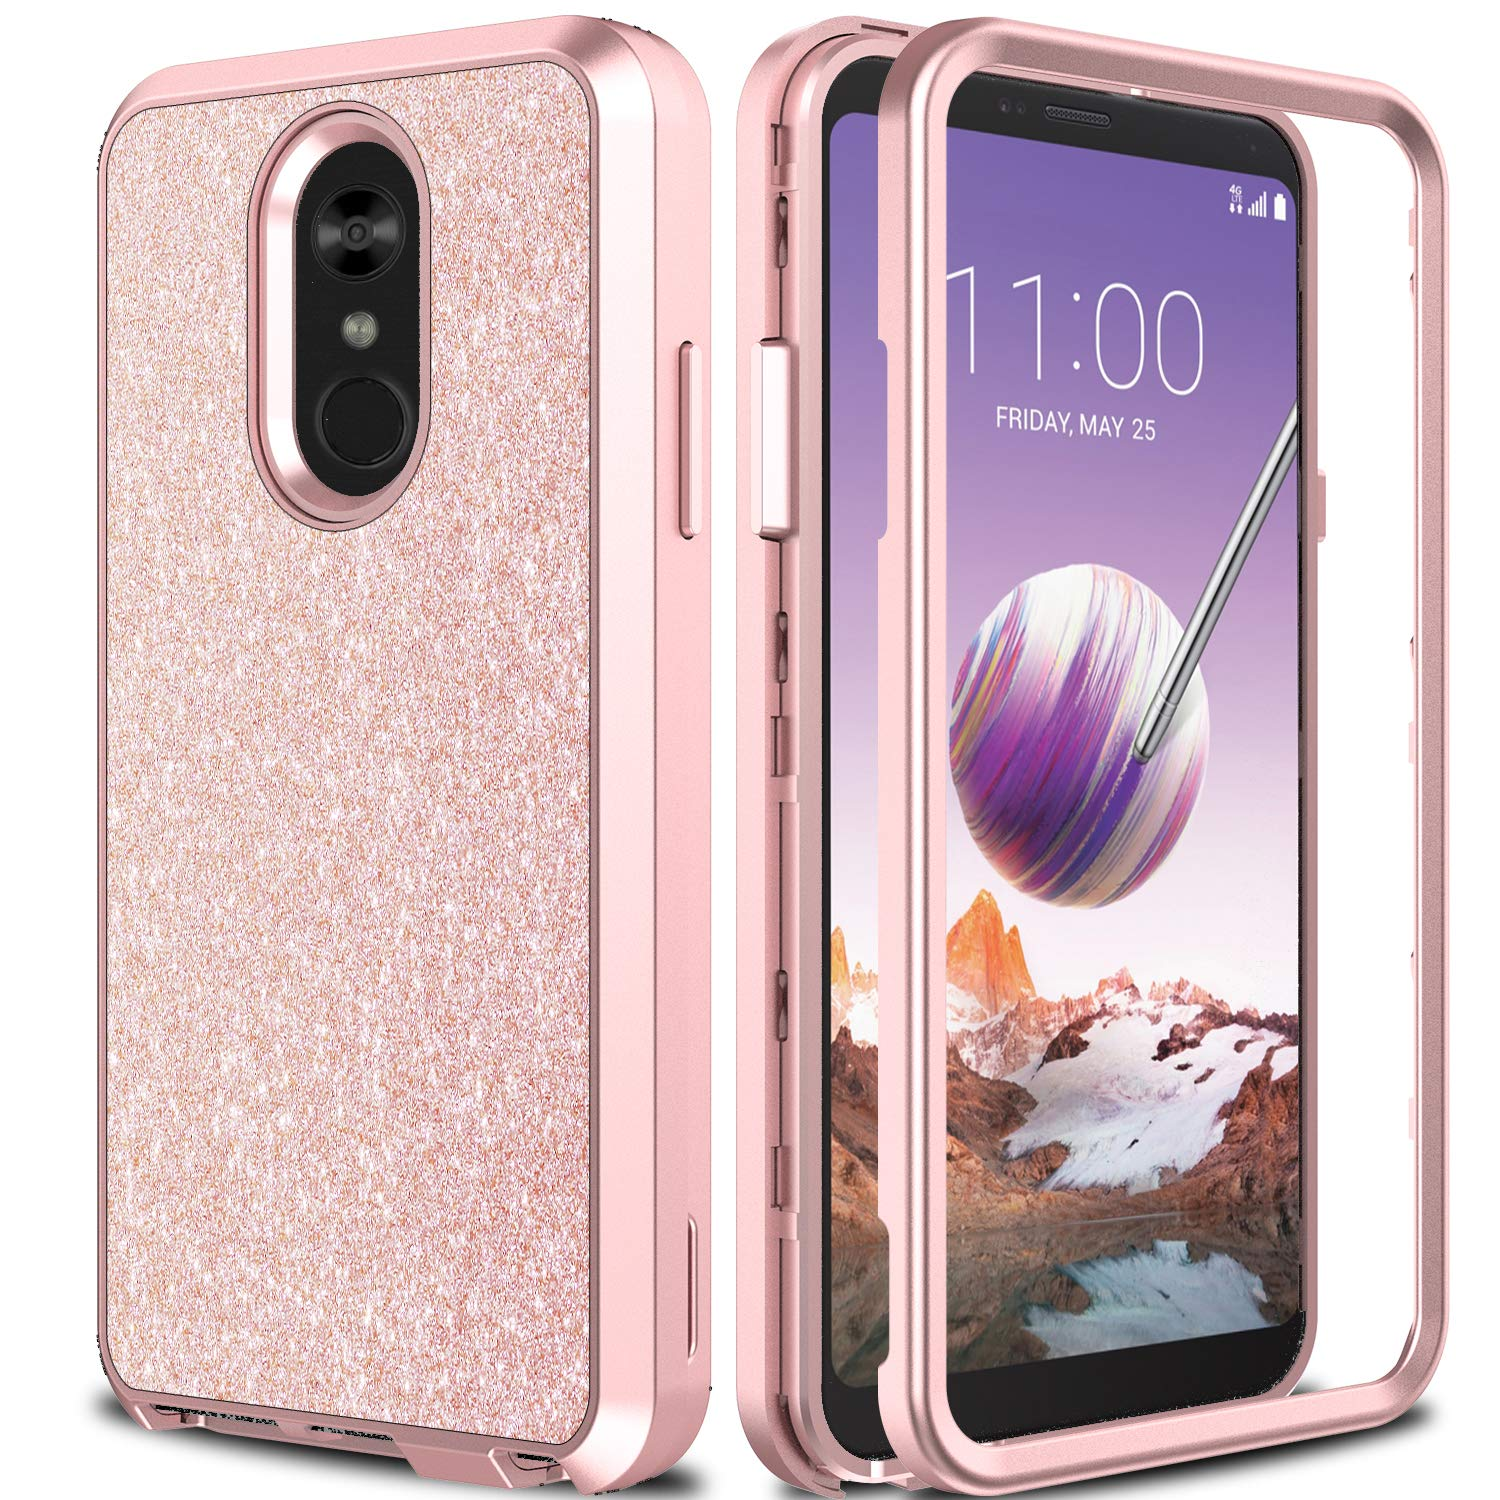 LG Stylo 4 Case, LG Q Stylo Case 2018 AMENQ Heavy Duty Glitter Sparkle Bling Design with Shockproof Premium TPU Armor and Rugged PC Back Cover for New LG Phone (Sparkle Rose Gold)